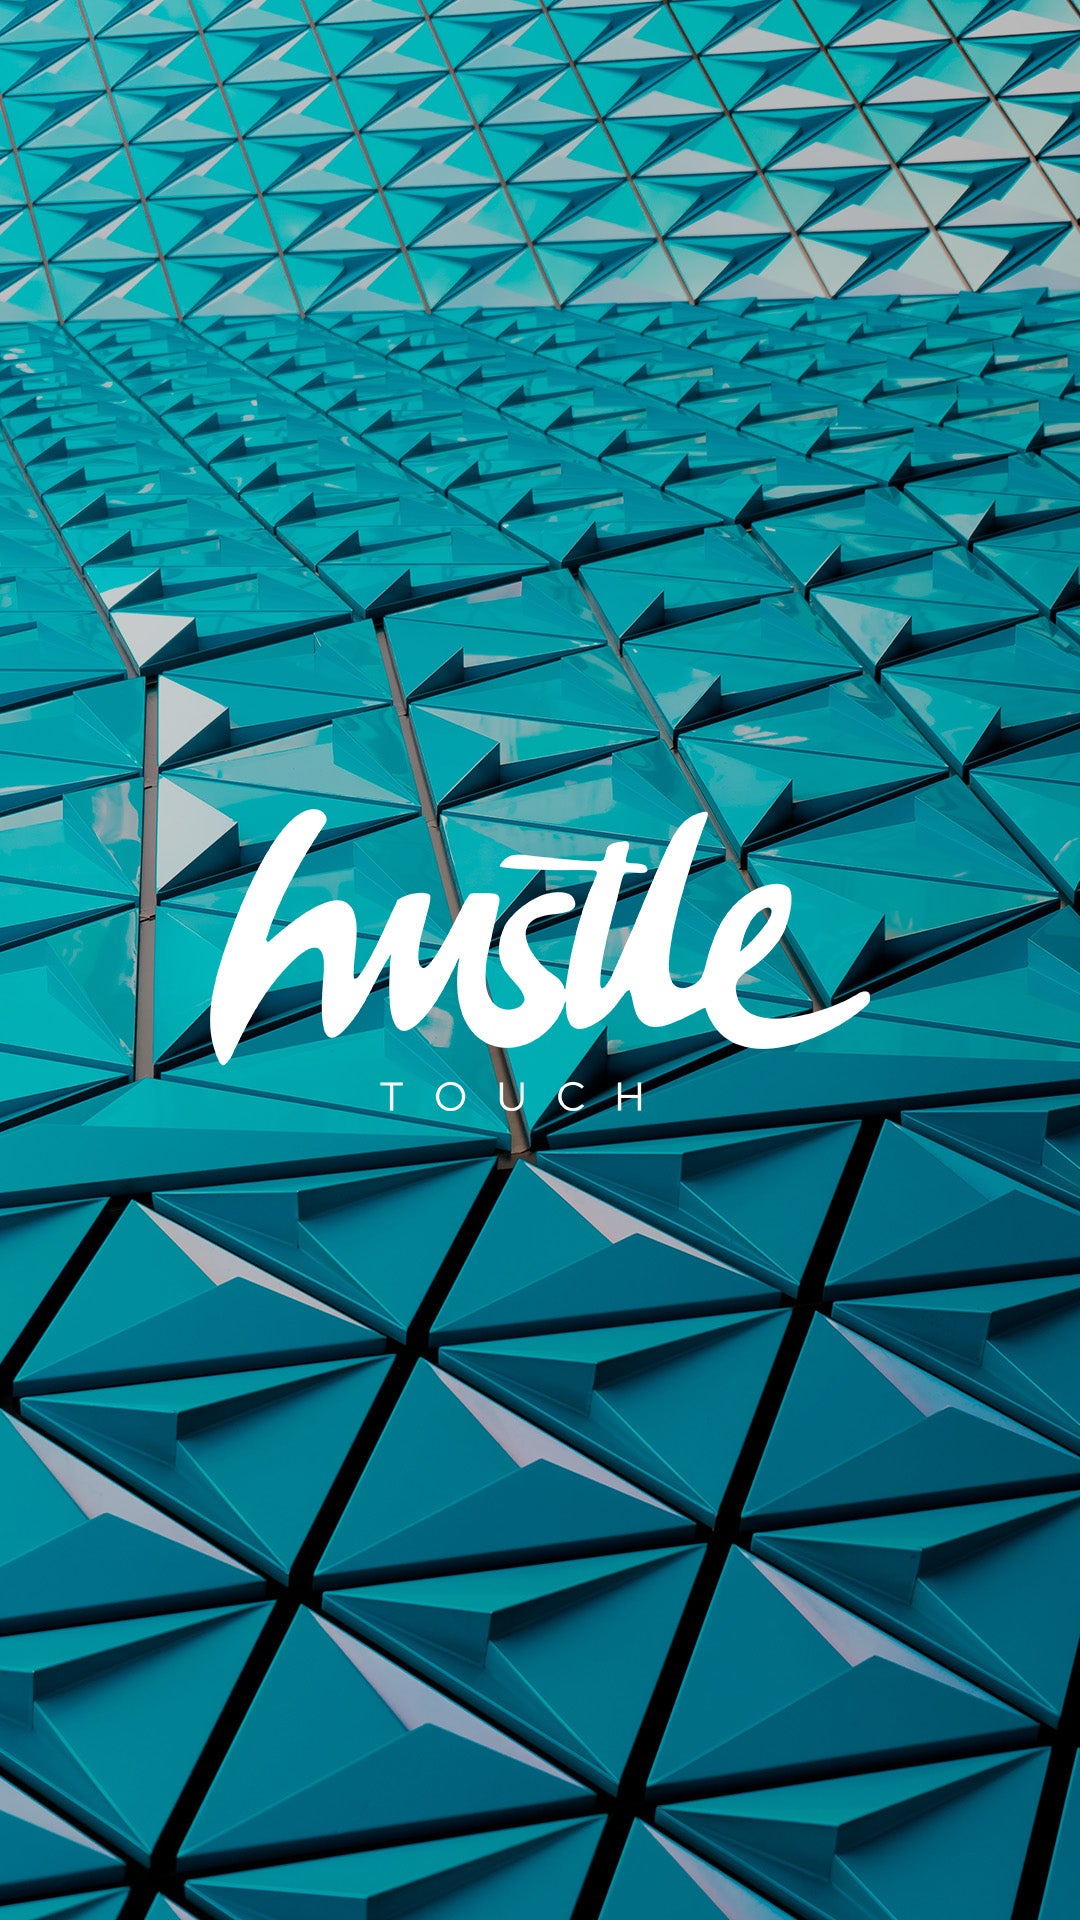 Get our Phone Hustle Touch Wallpaper 003 for free. Give your setup a special hustle vibe with our wallpaper.